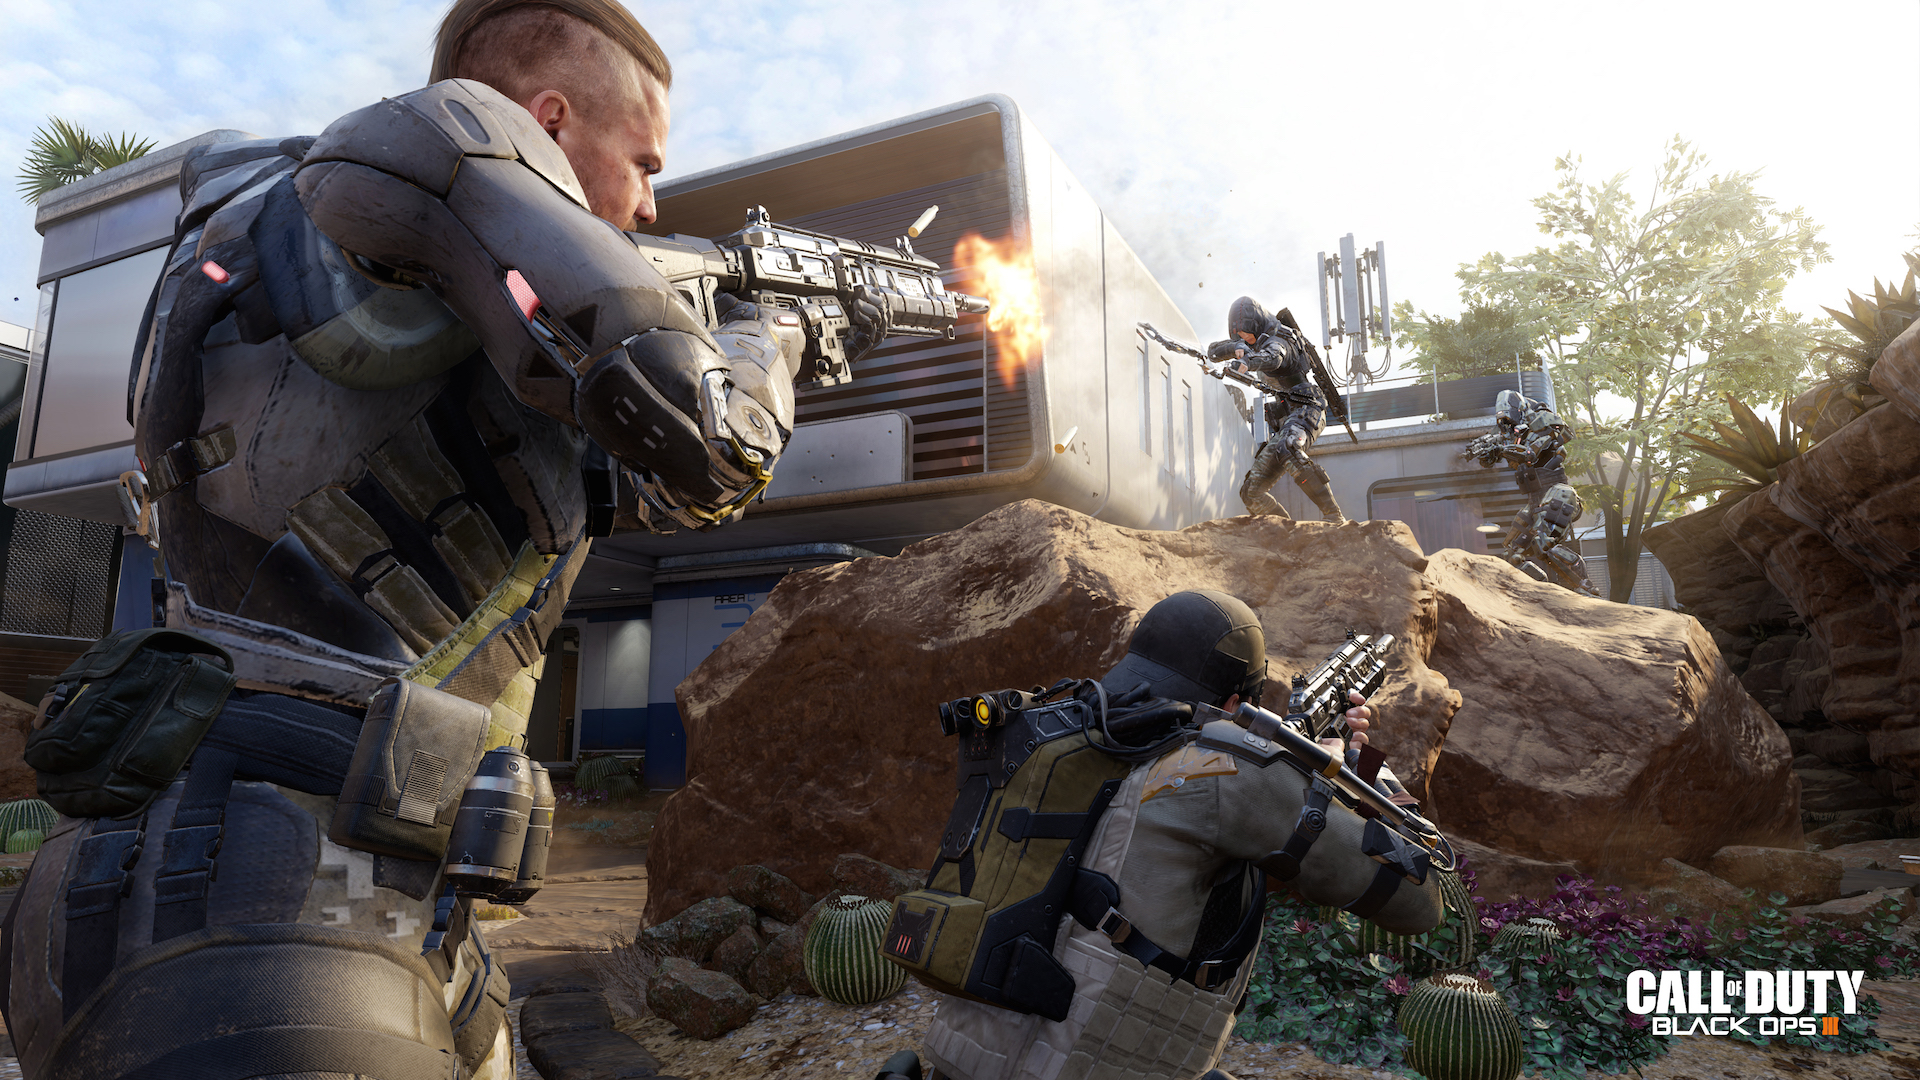 Call of Duty: Black Ops 3 release date revealed in new trailer | BGR